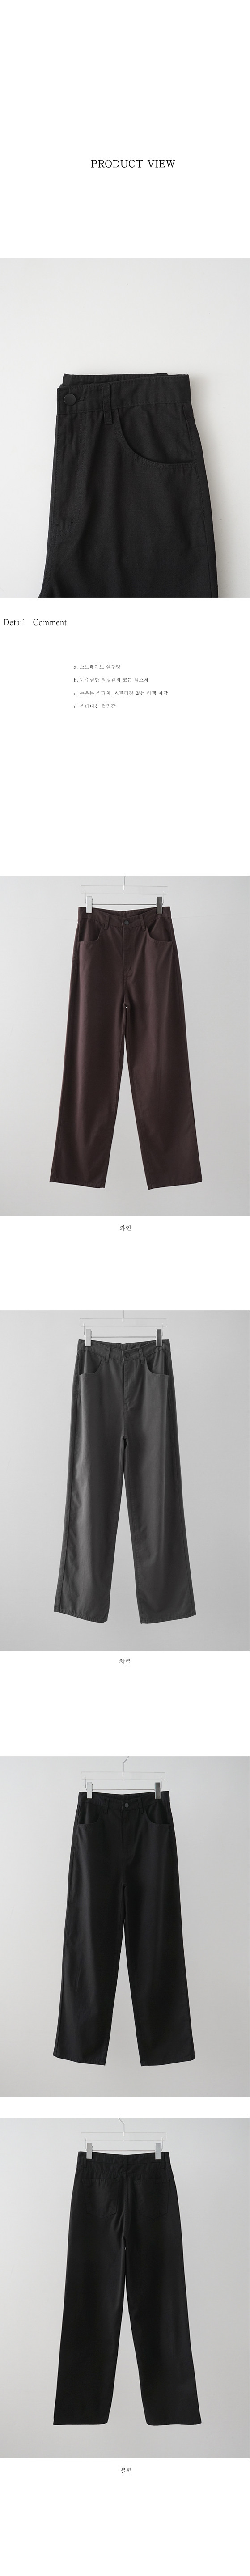 wearable basic cotton pants